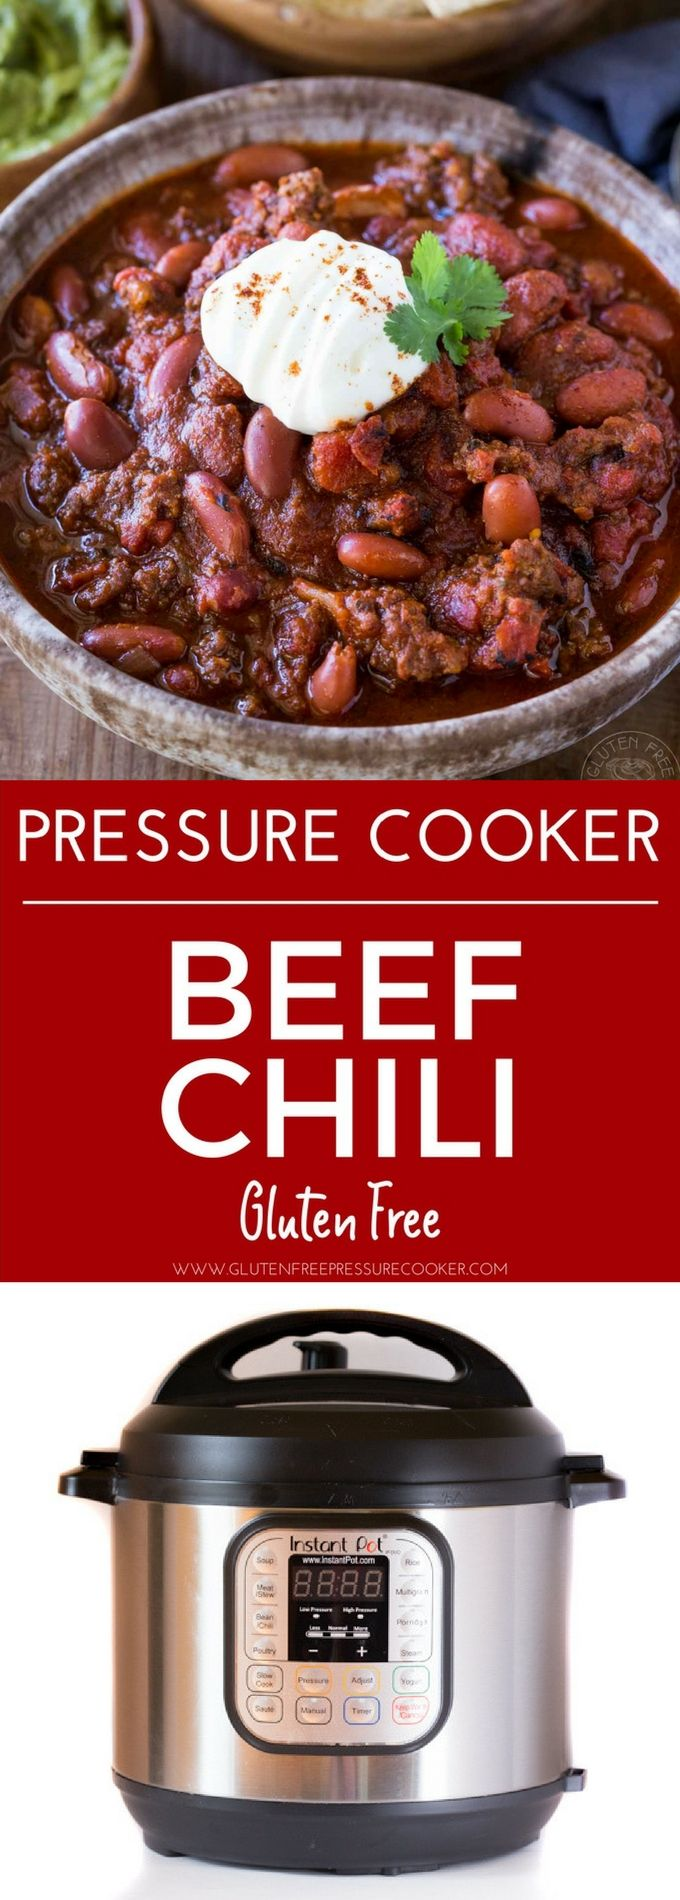 BEST Instant Pot Chili!! My recipe has been tested & tweaked to create a delicious pressure cooker ground beef chili recipe you'll LOVE! It's gluten free. Pressure cooker recipe for ground beef chili, Texas style Chili con carne #instantpotchili #instantpot #instapot #pressurecooker #glutenfreepressurecooker